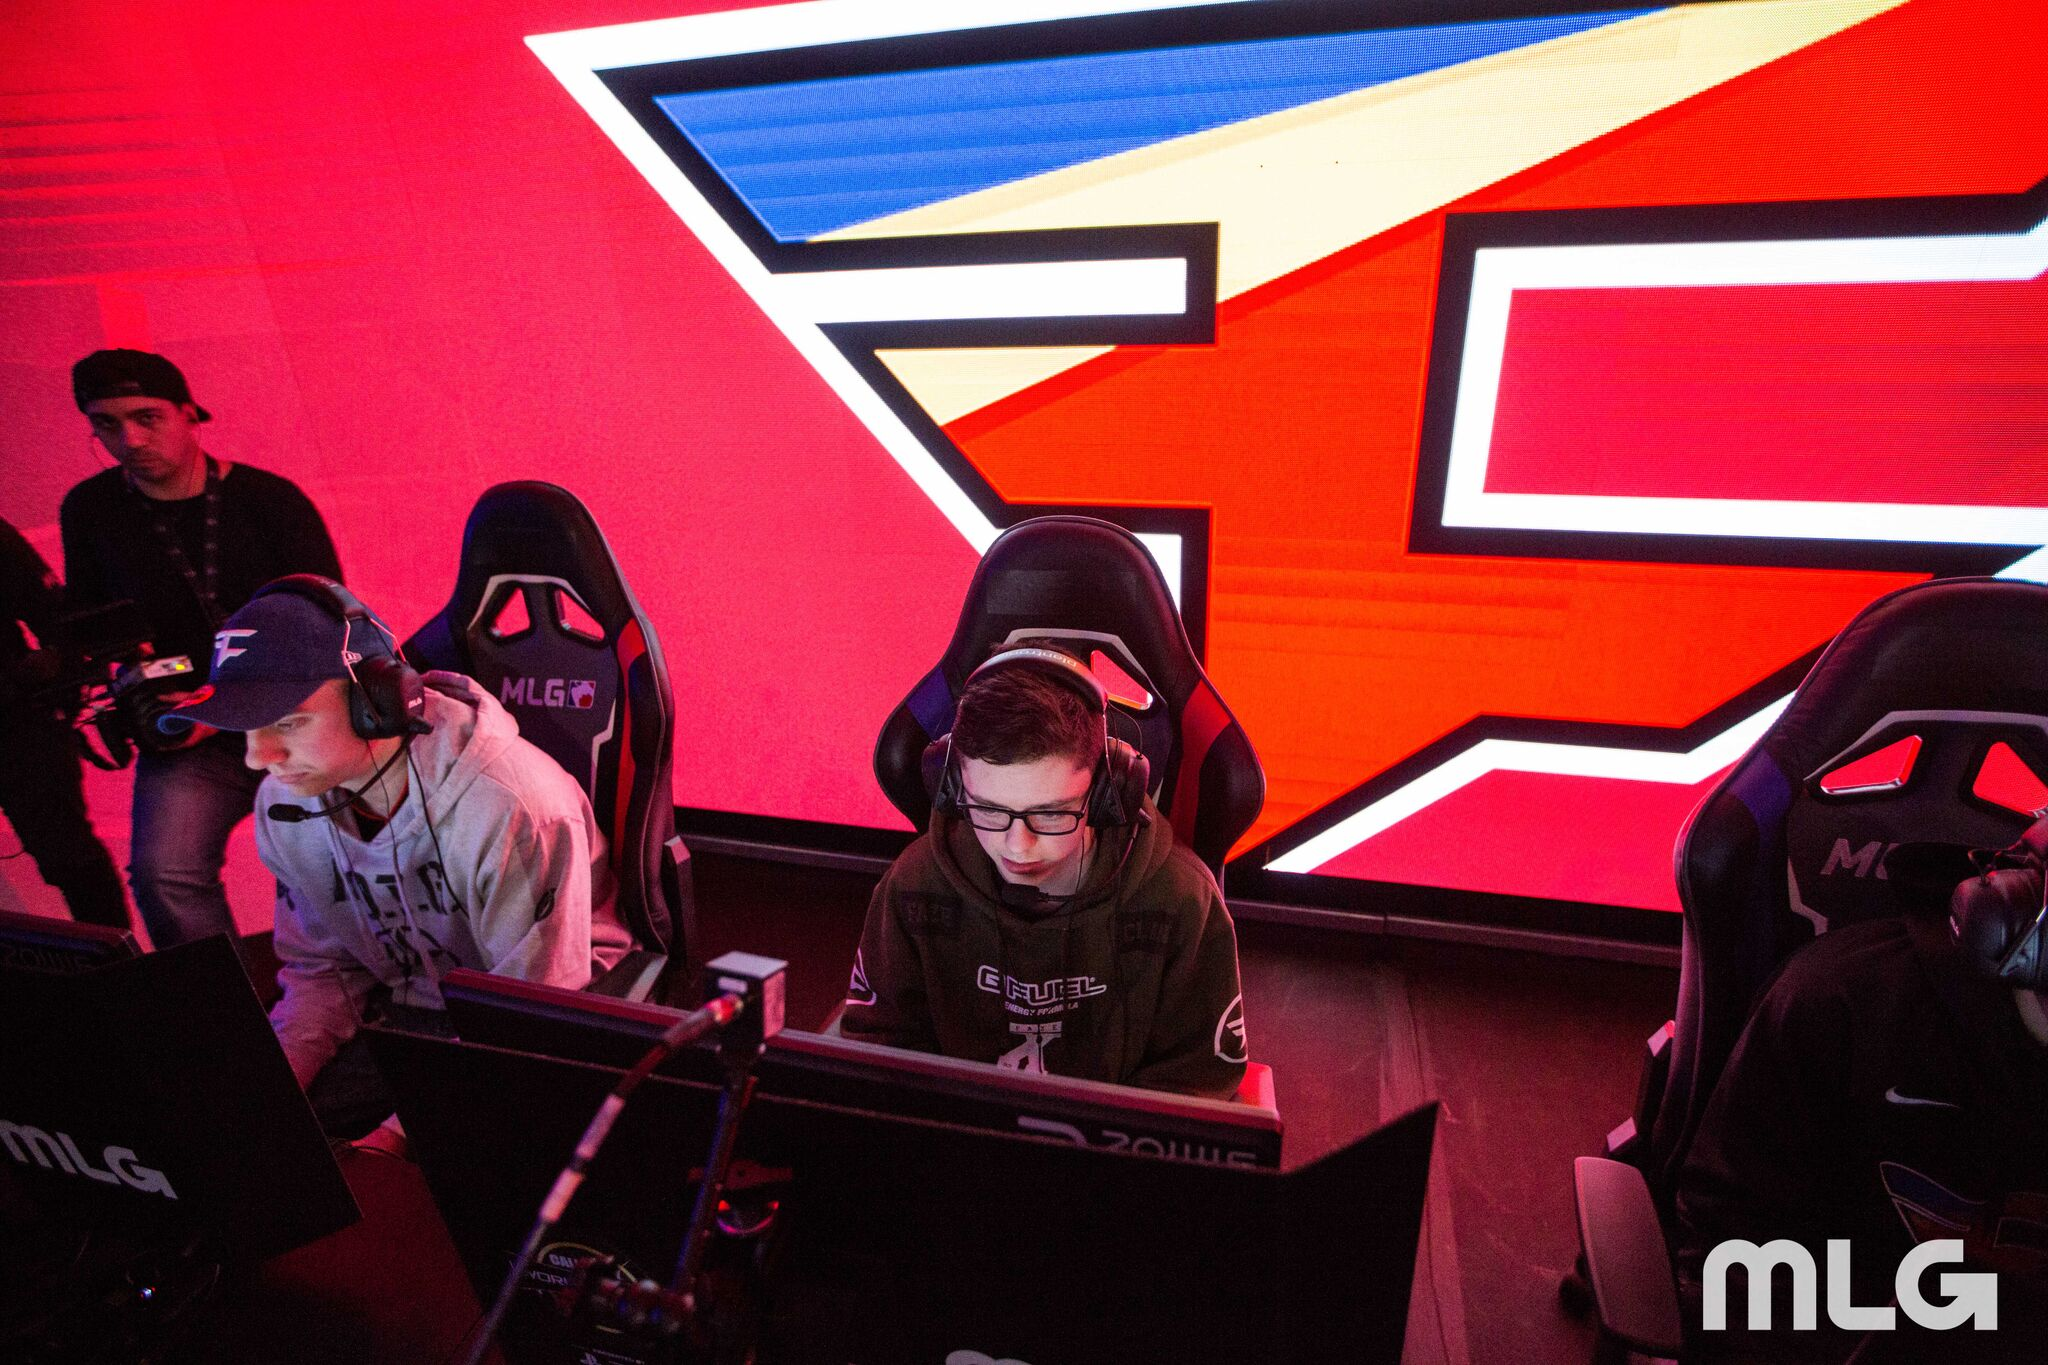 FaZe Clan Is Being Sued By An Apparel Company For Alleged Trademark Infringement Dot Esports